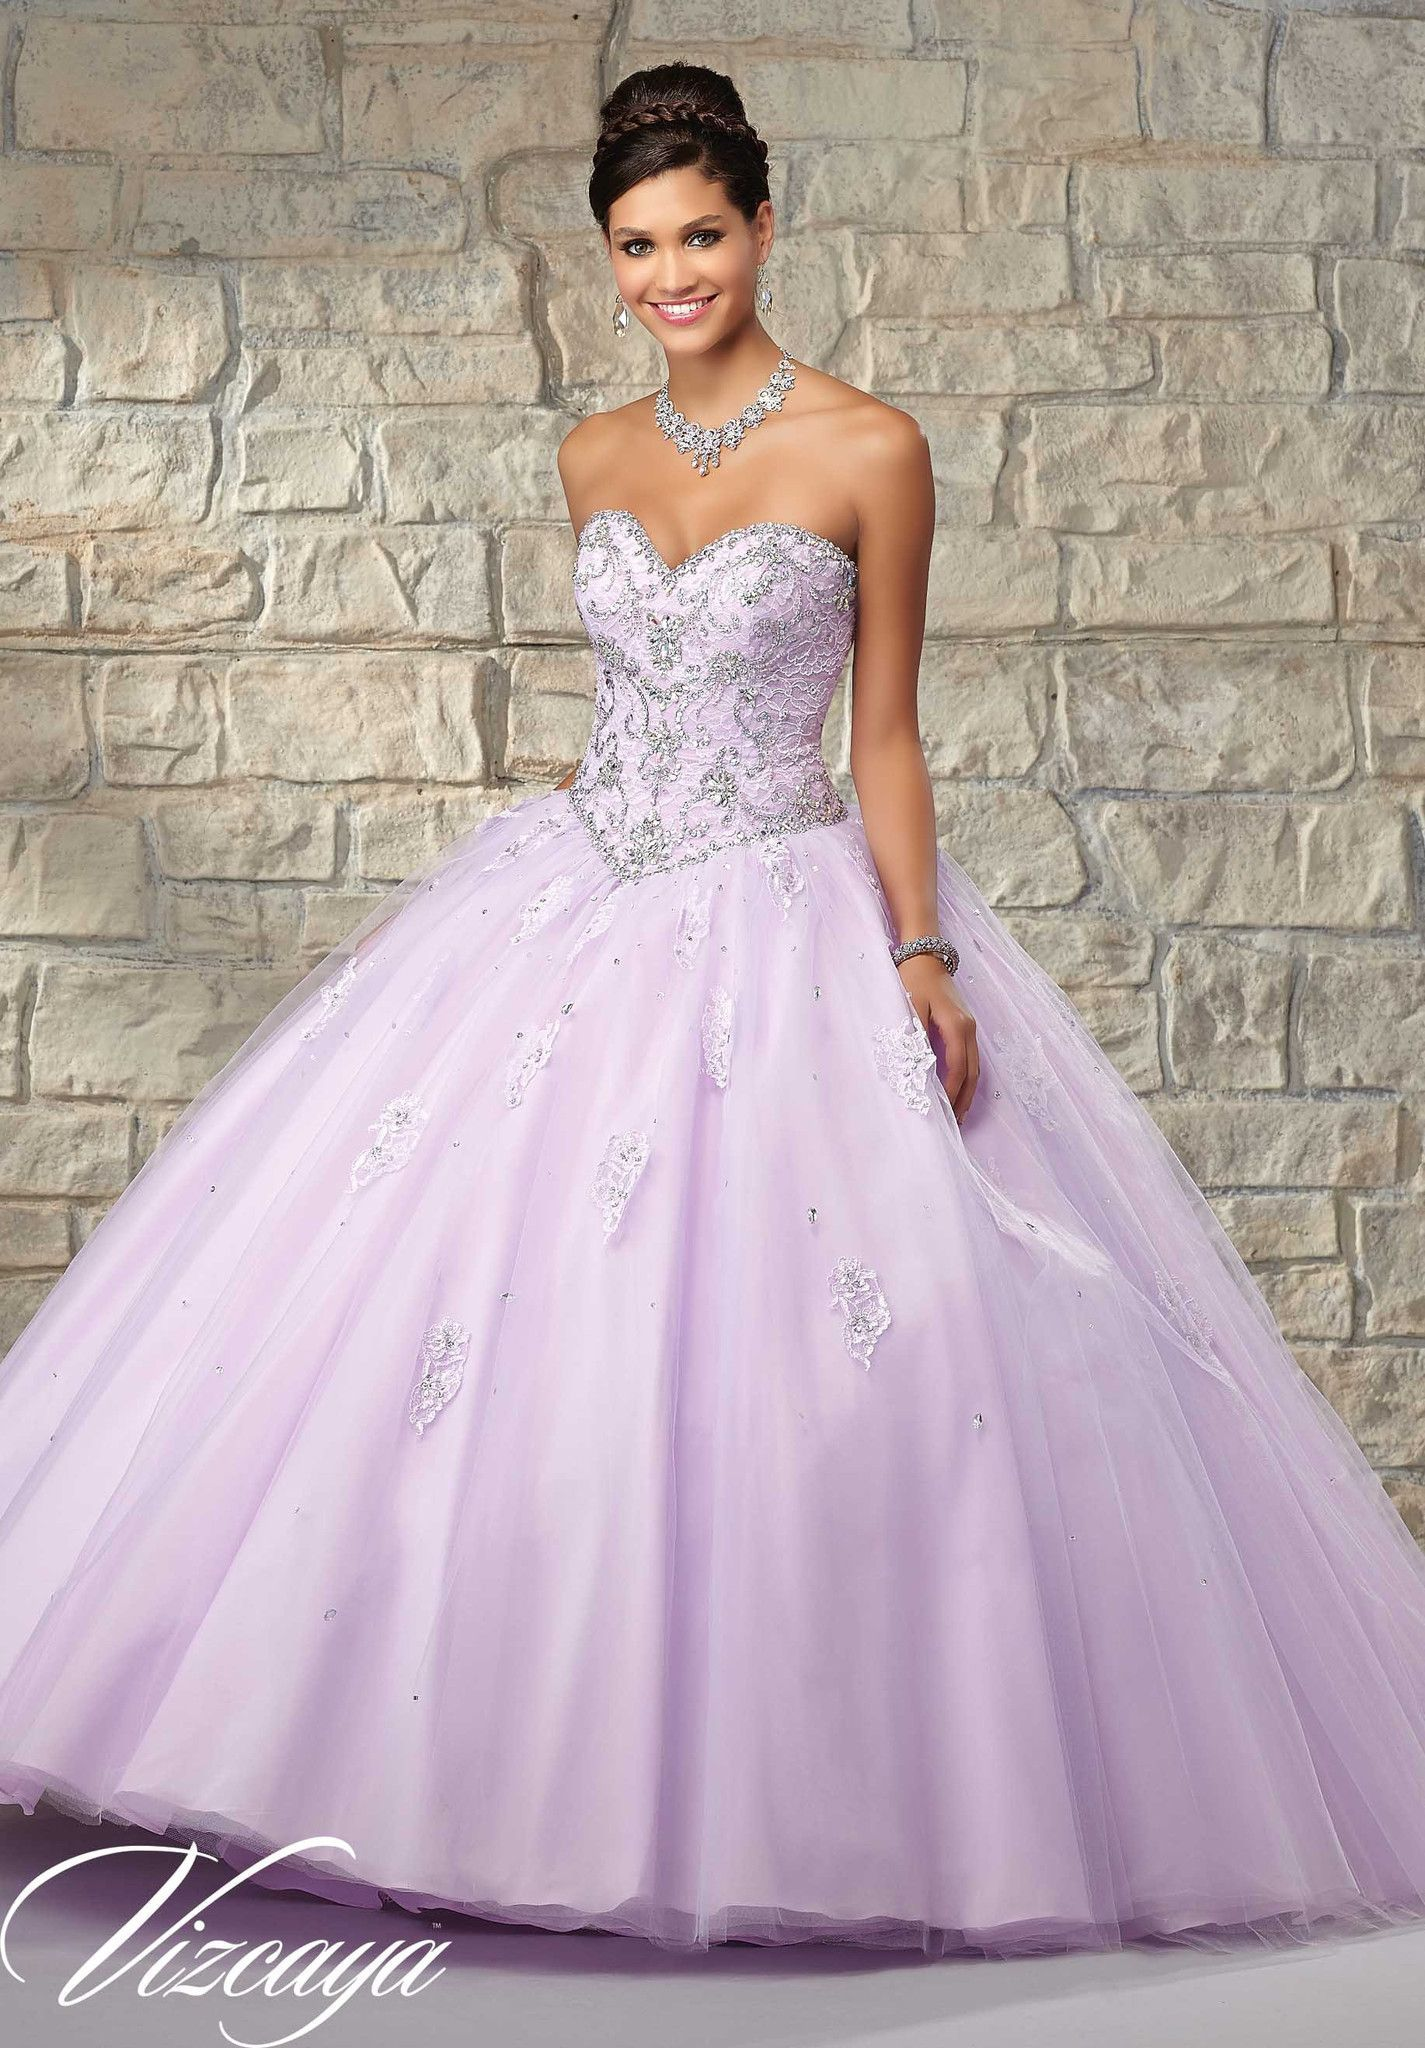 Mori lee vizcaya quinceanera dress style is made for girls who